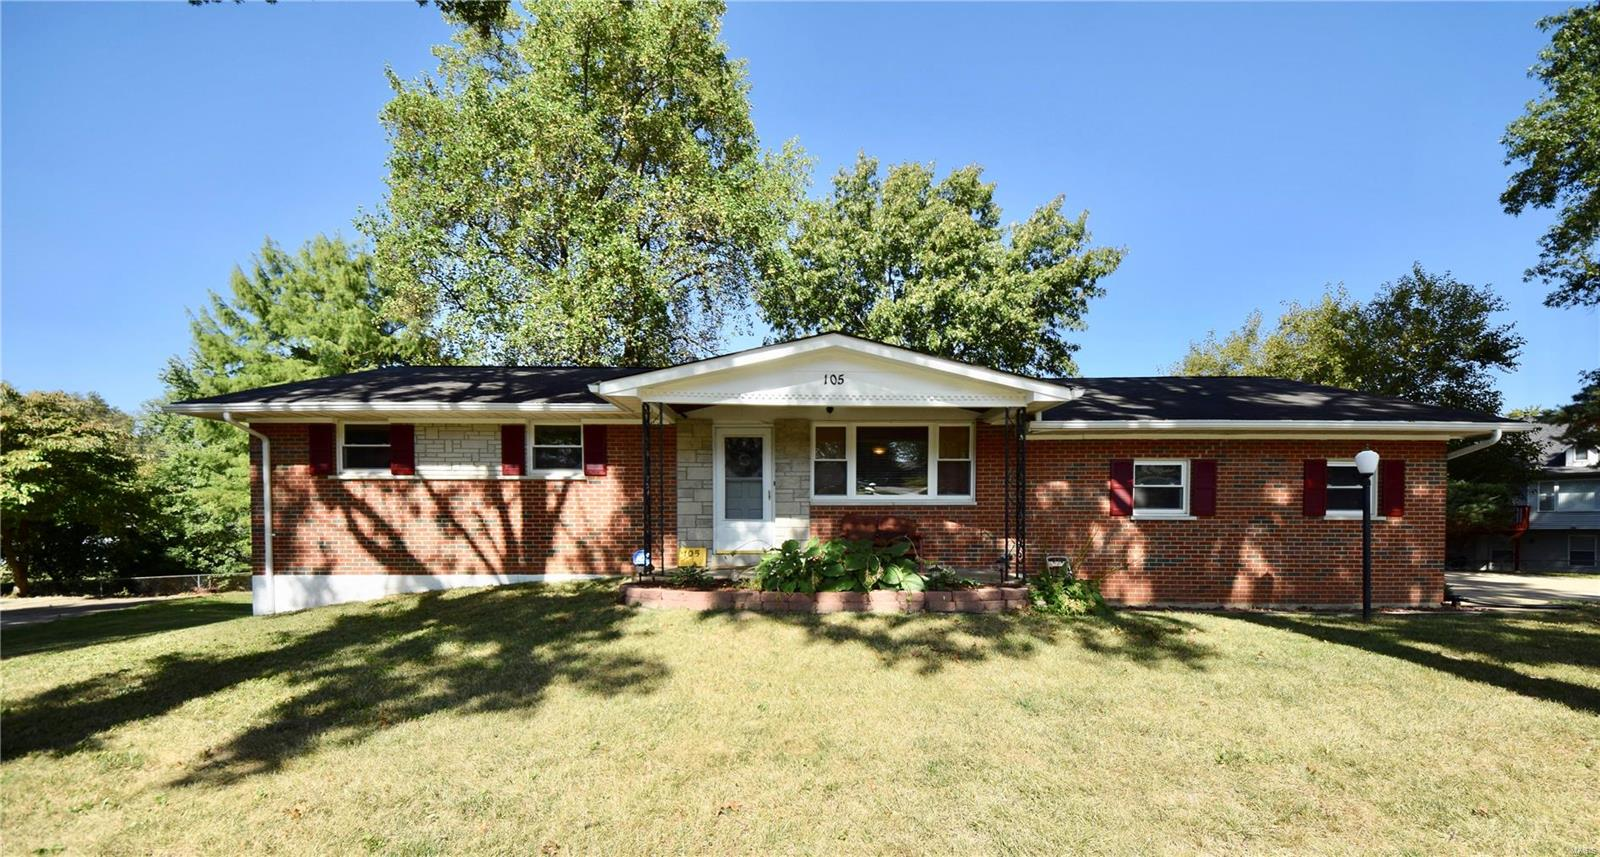 105 Green Acres Property Photo - St Louis, MO real estate listing